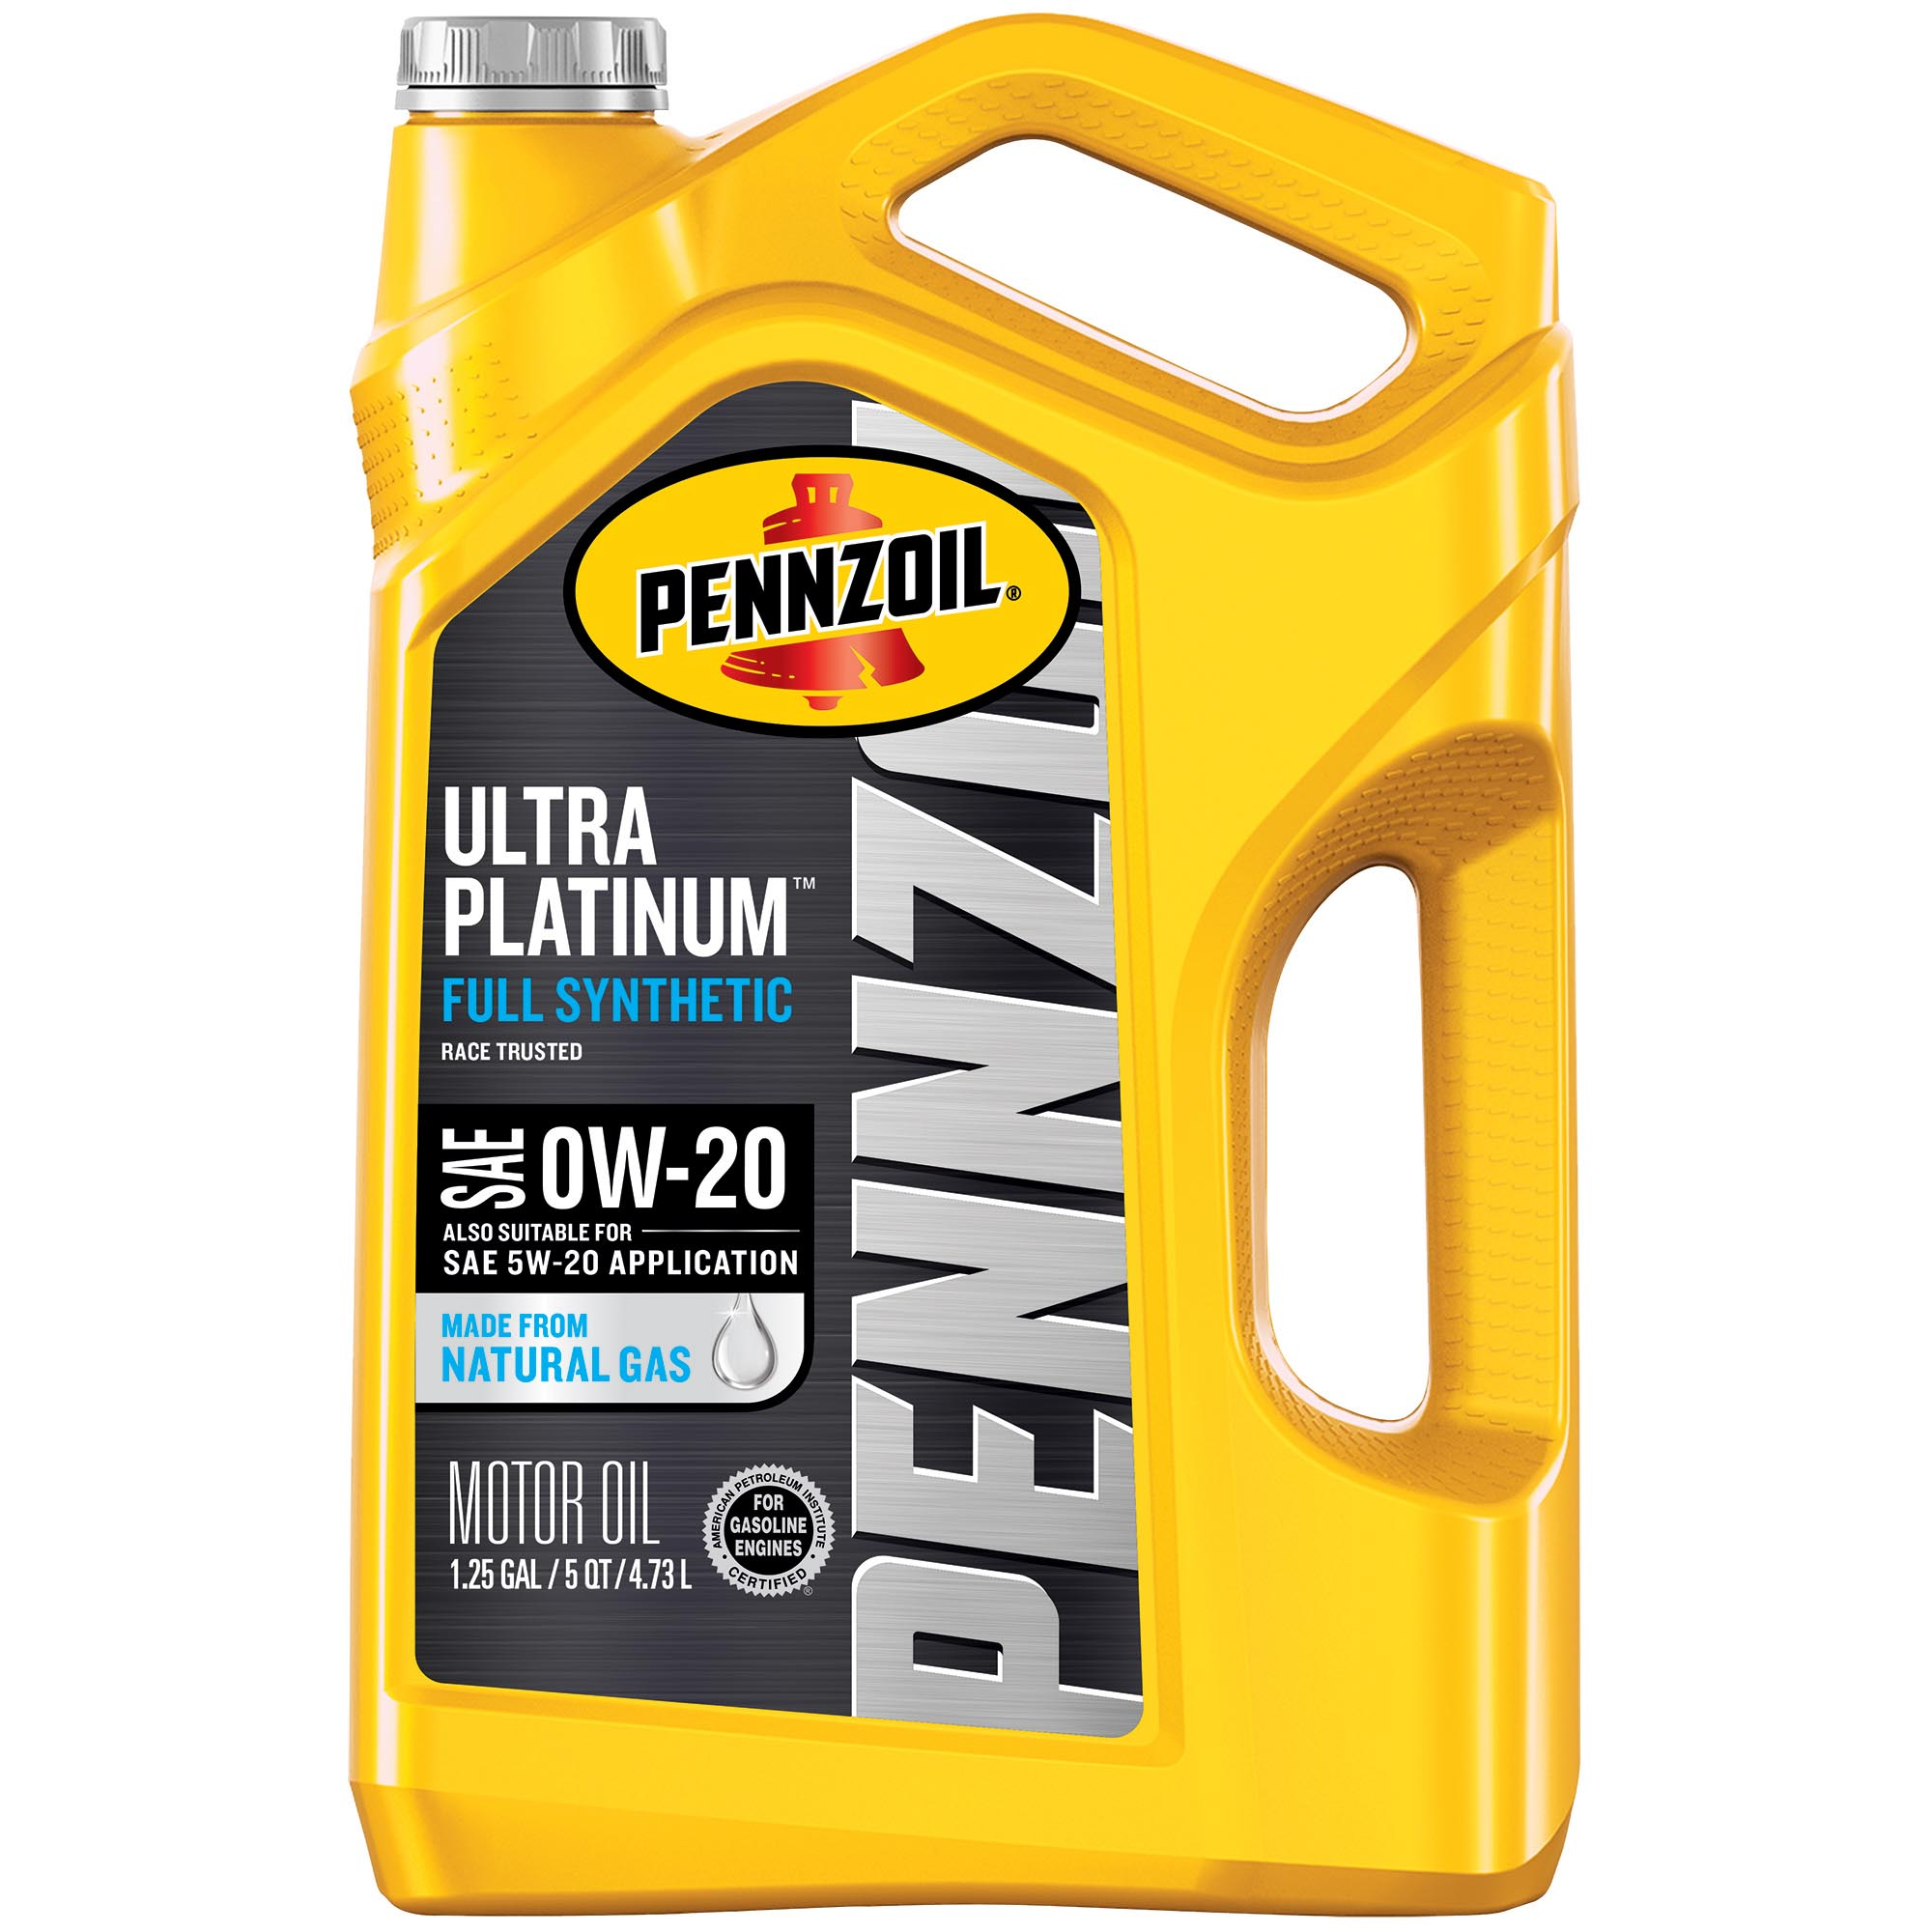 Pennzoil Ultra Platinum 0W-20 Full Synthetic Motor Oil, 5 Quart